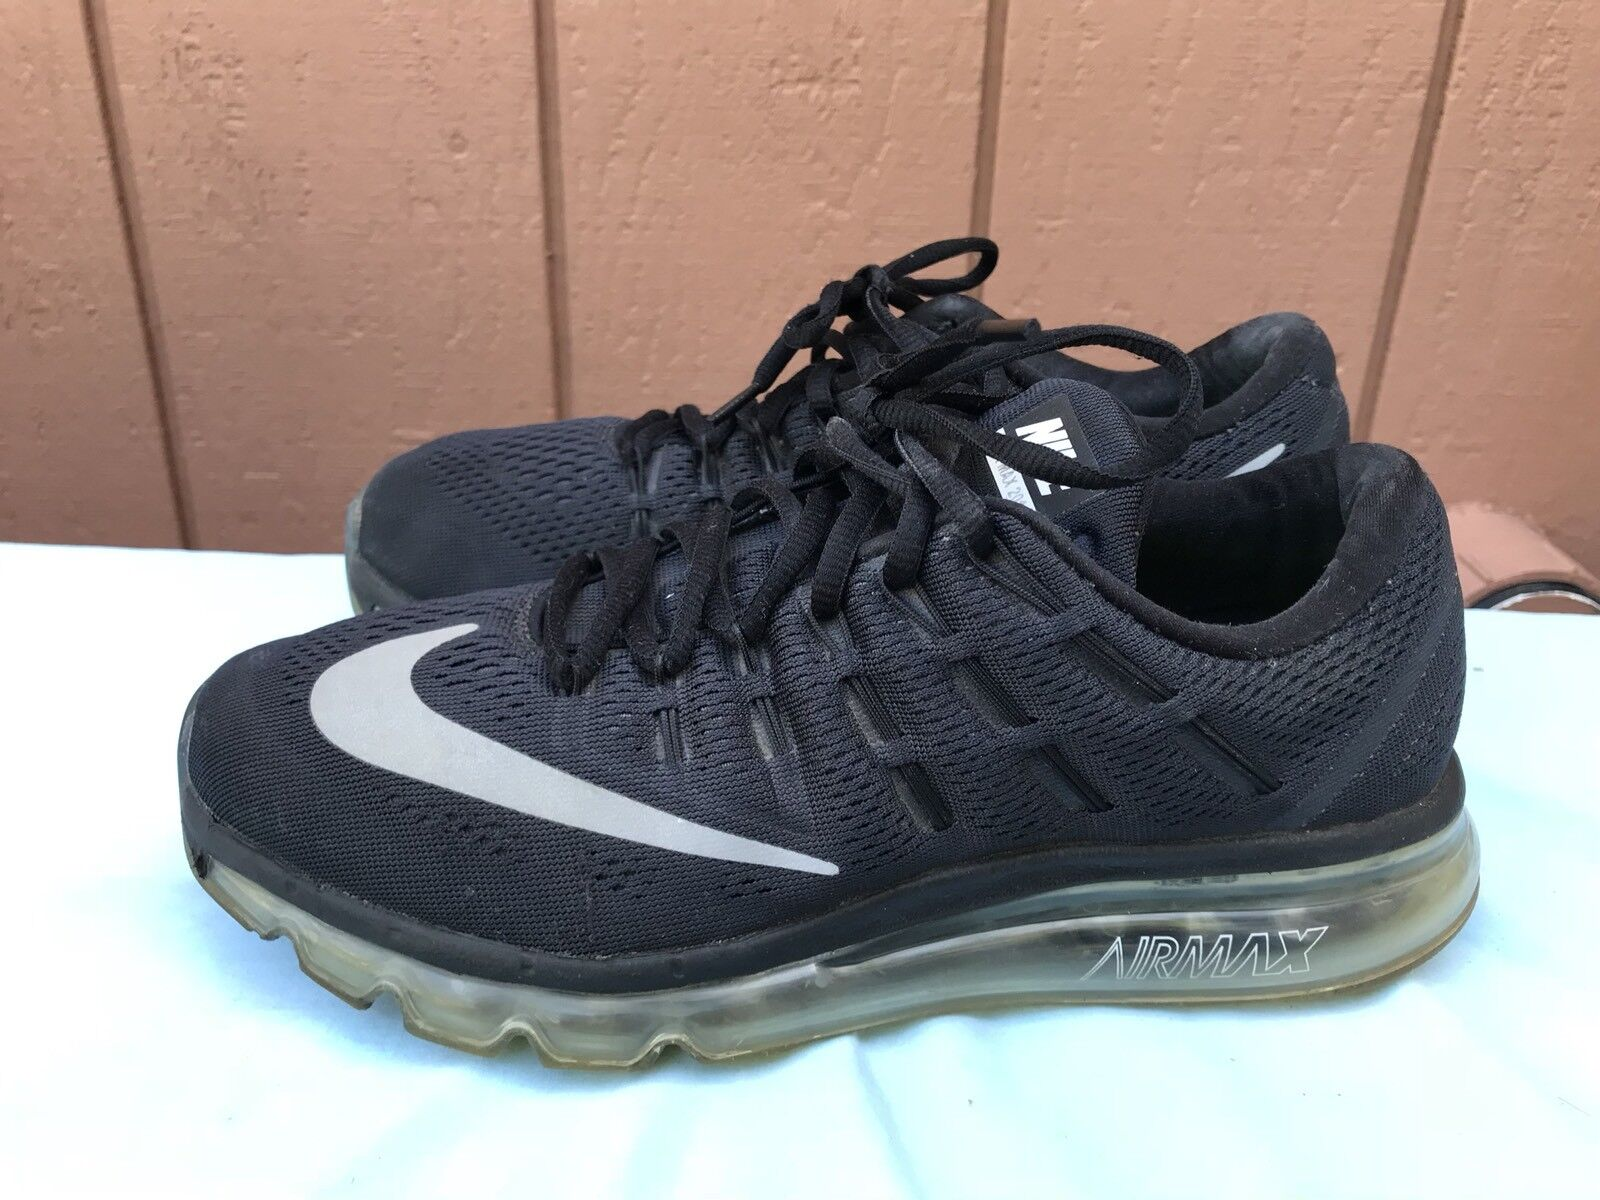 Nike Women's SZ US 9 Air Max 2016 Running 806772 001 Black White Ice Sole A6